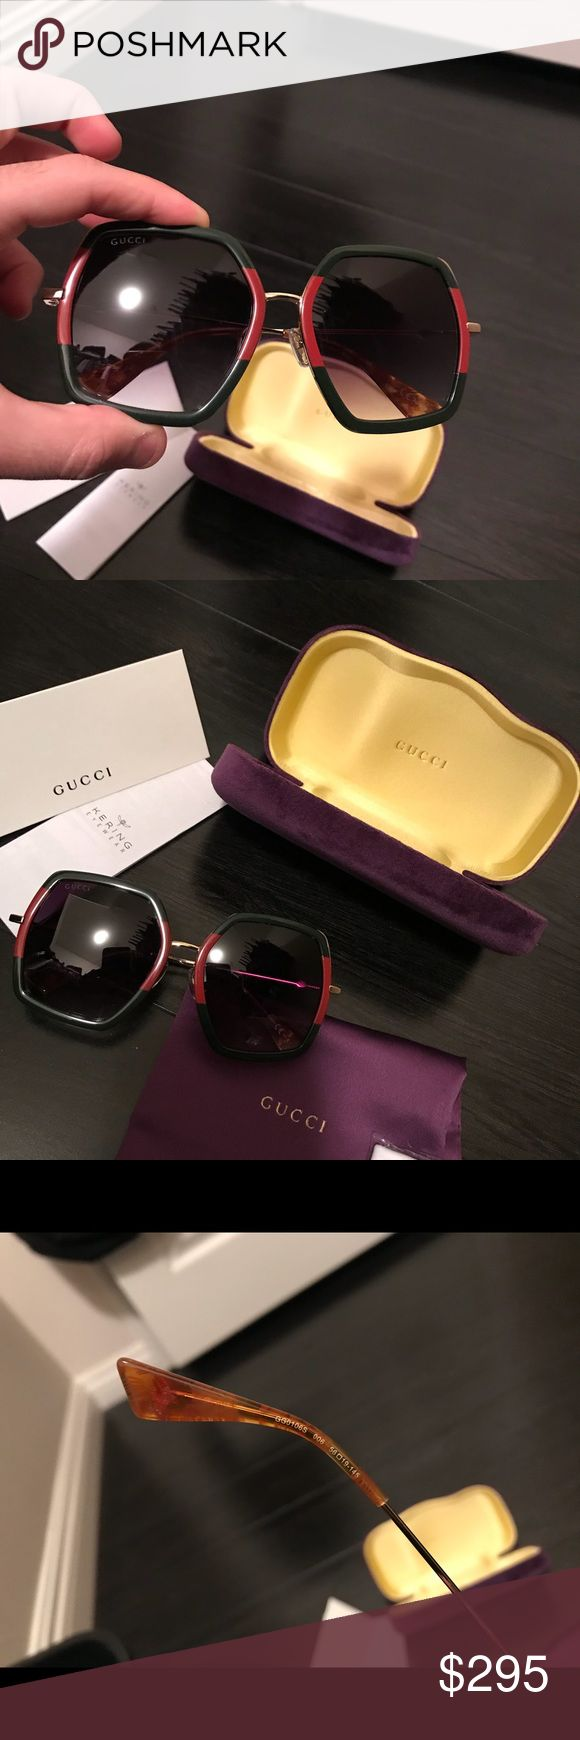 Gucci gg0106 s Sunglasses Authentic Please review pictures. These are AUTHENTIC Gucci sunglasses gg0106/s. Retail price $500+ at Bloomingdales. I will ship Immediately new to Poshmark i usually sell on eBay. Outstanding track record.  Dark black lense gradient. Frame is the Gucci colors as seen in photos listed. Gucci Accessories Sunglasses